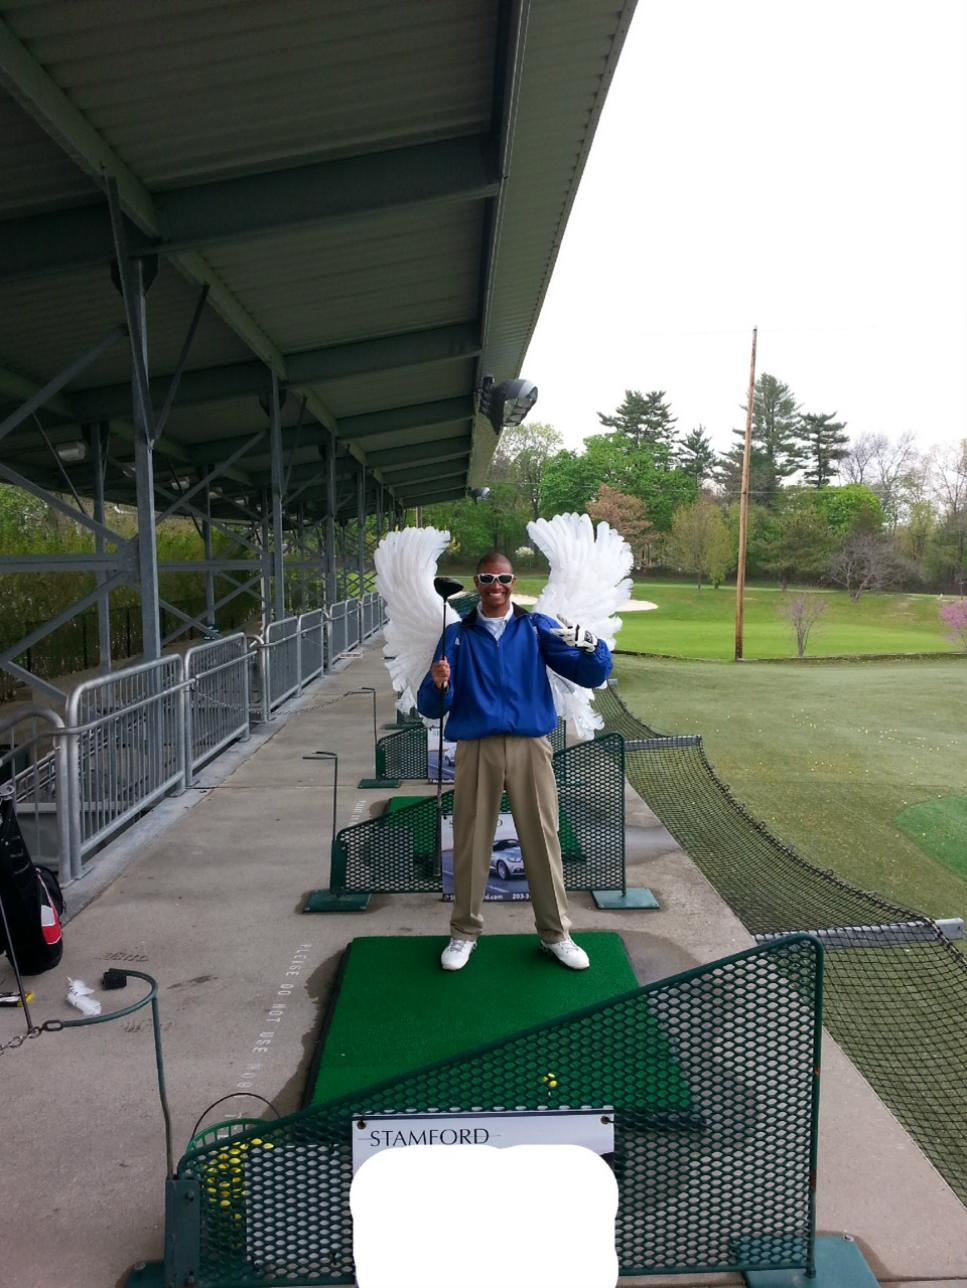 5 2 16 Sterling Farms Golf Driving Range  Golf Ballin'.jpg